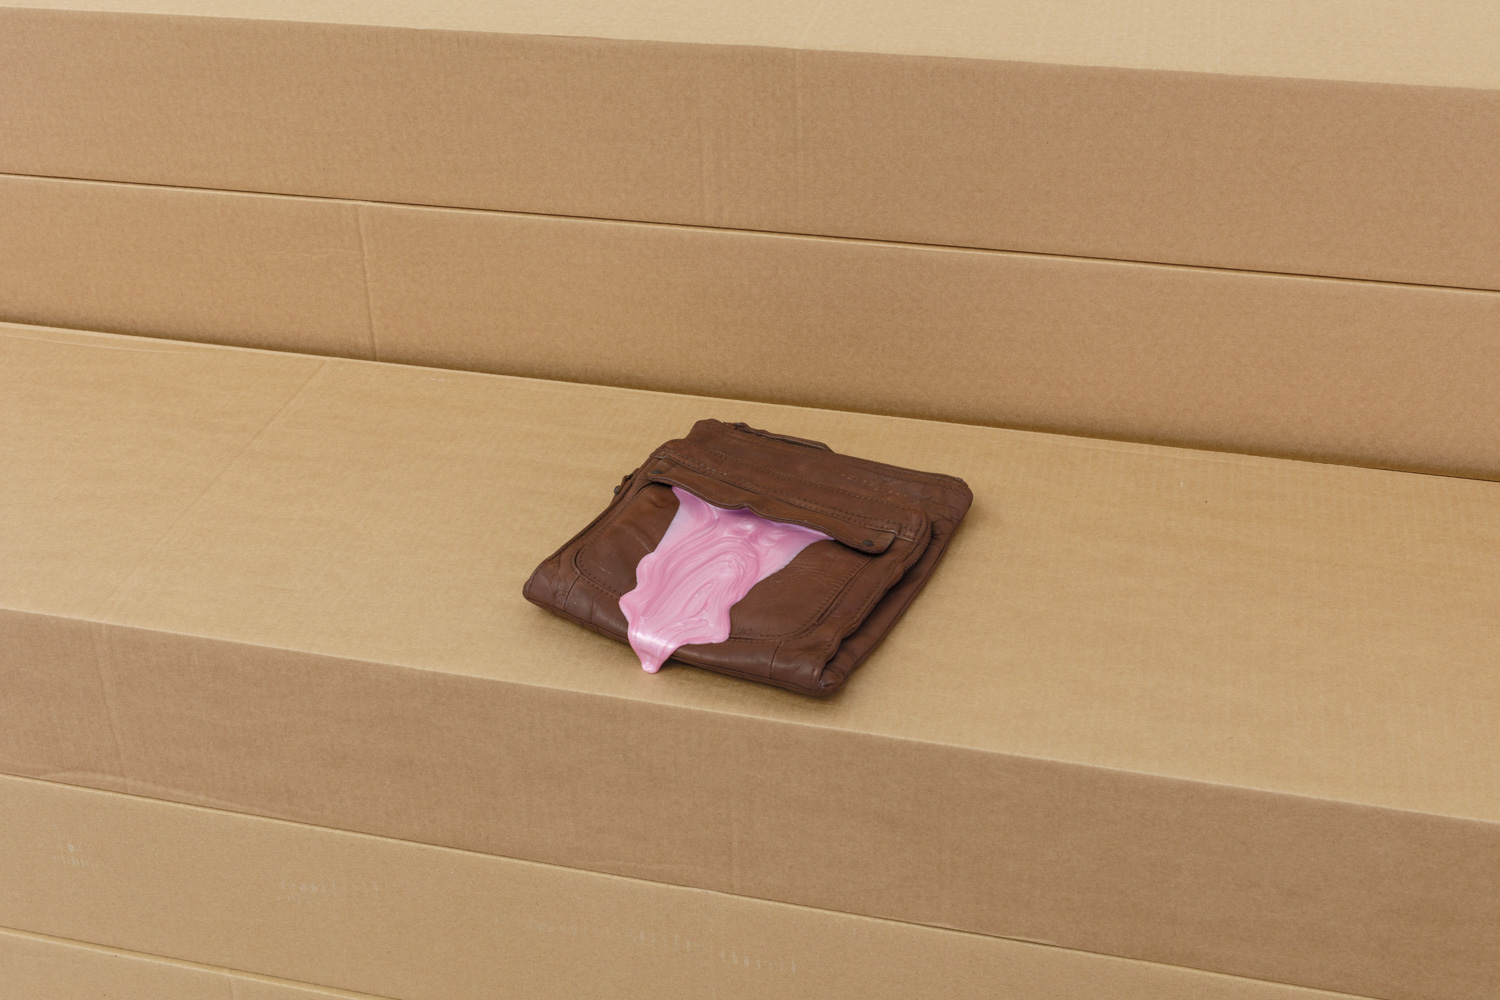 Pink slime oozes out of a brown object resembling a wallet placed on top of cardboard boxes.